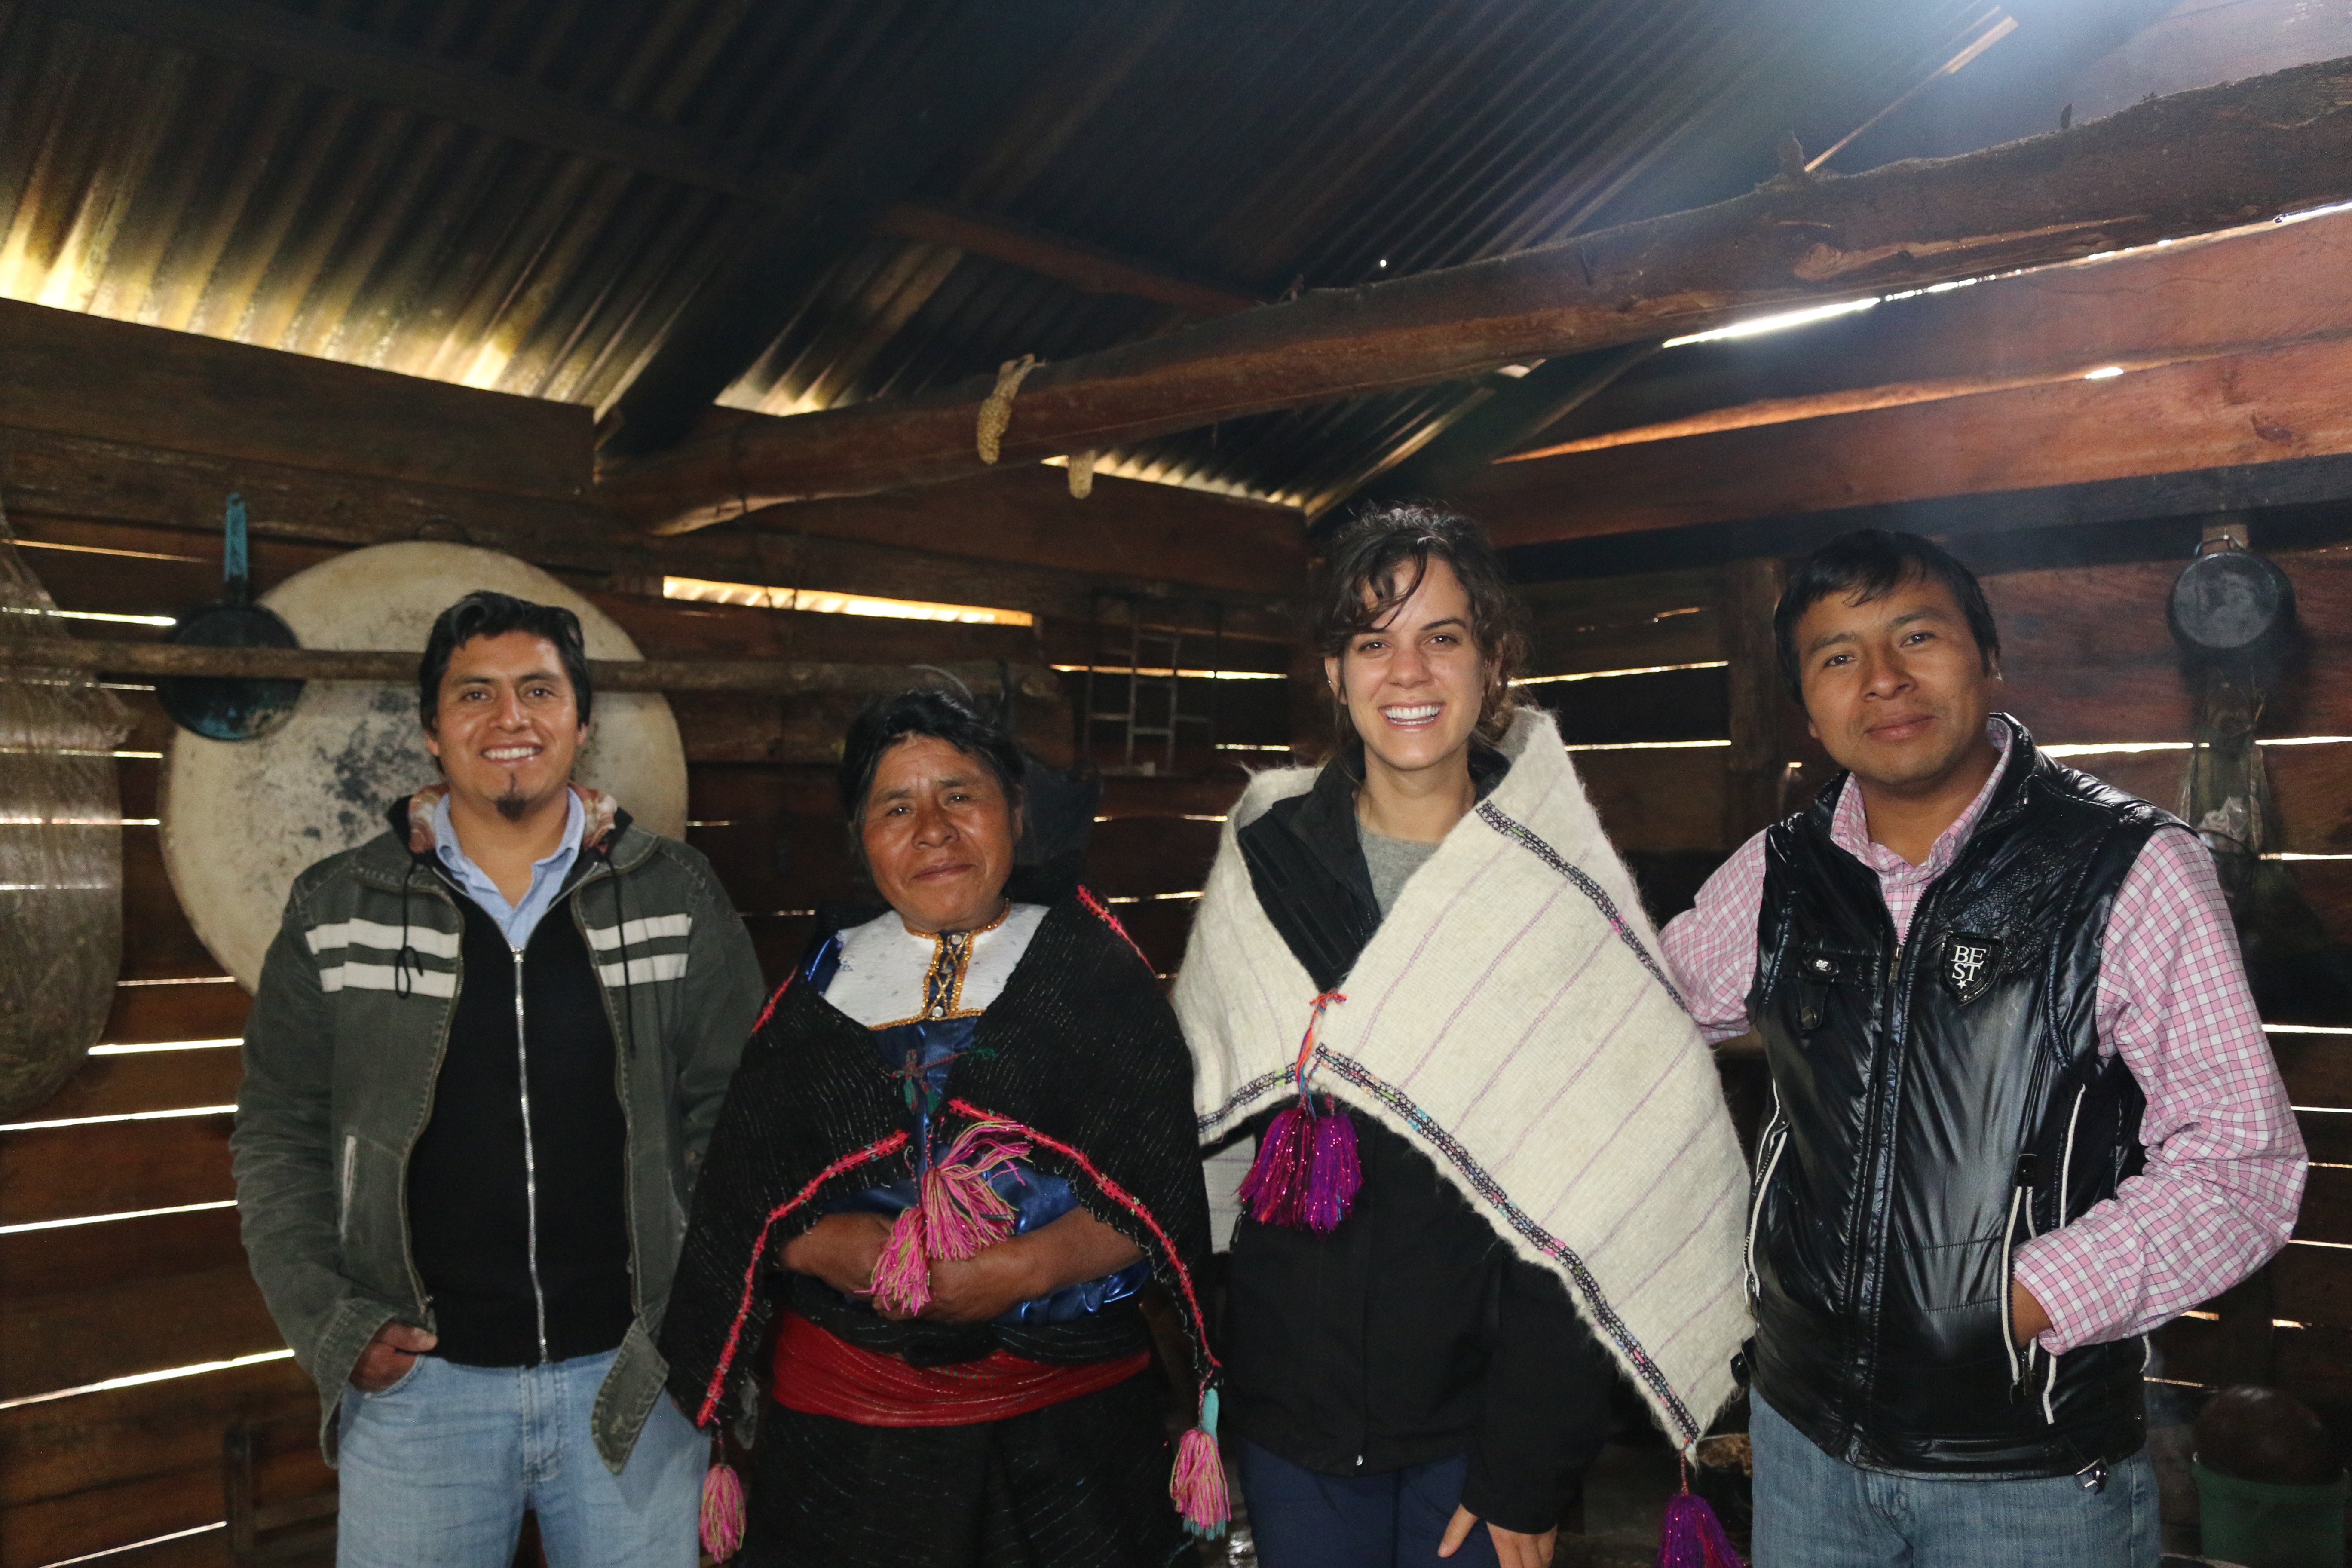 Friends from Cantaro Azul